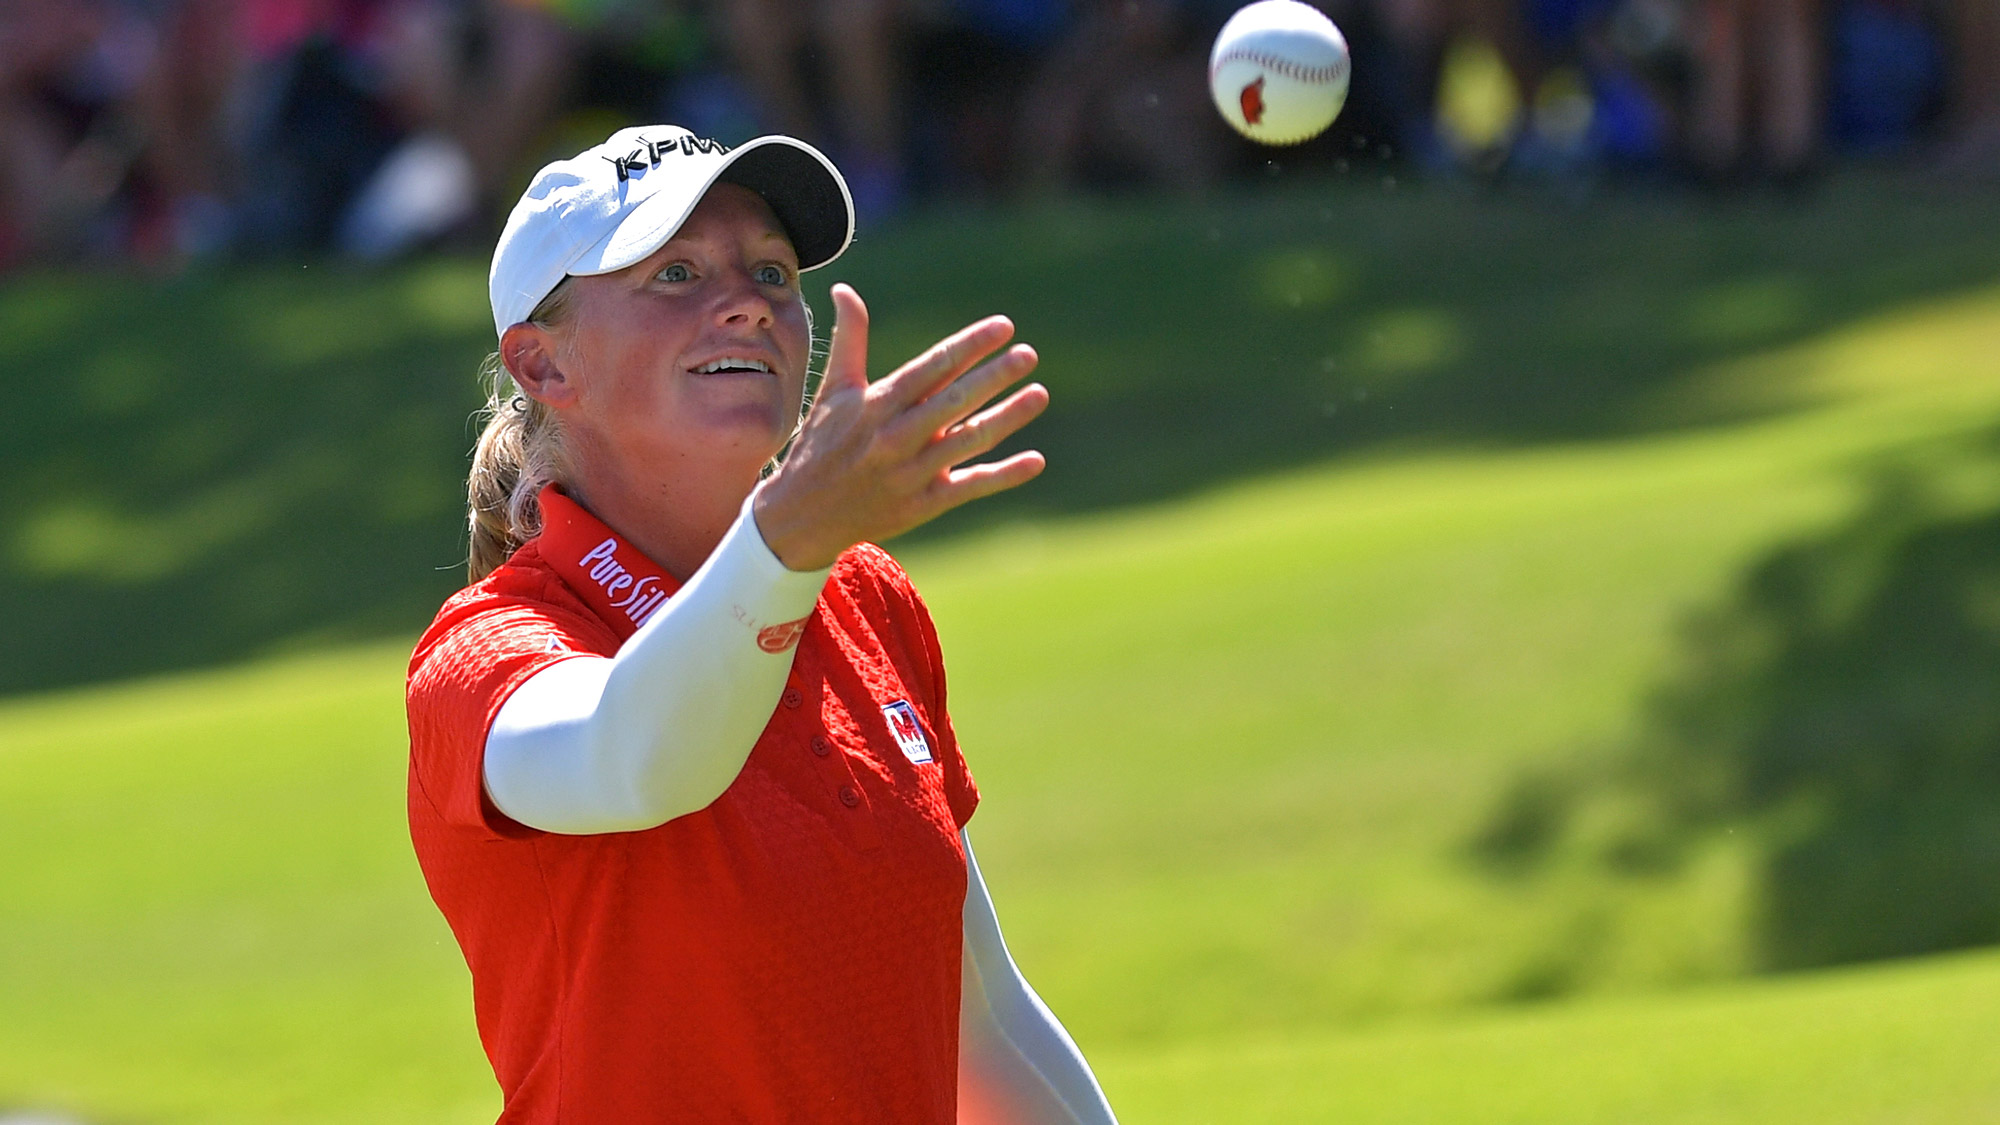 Stacy Lewis Throws a Foam Ball into the Crowd